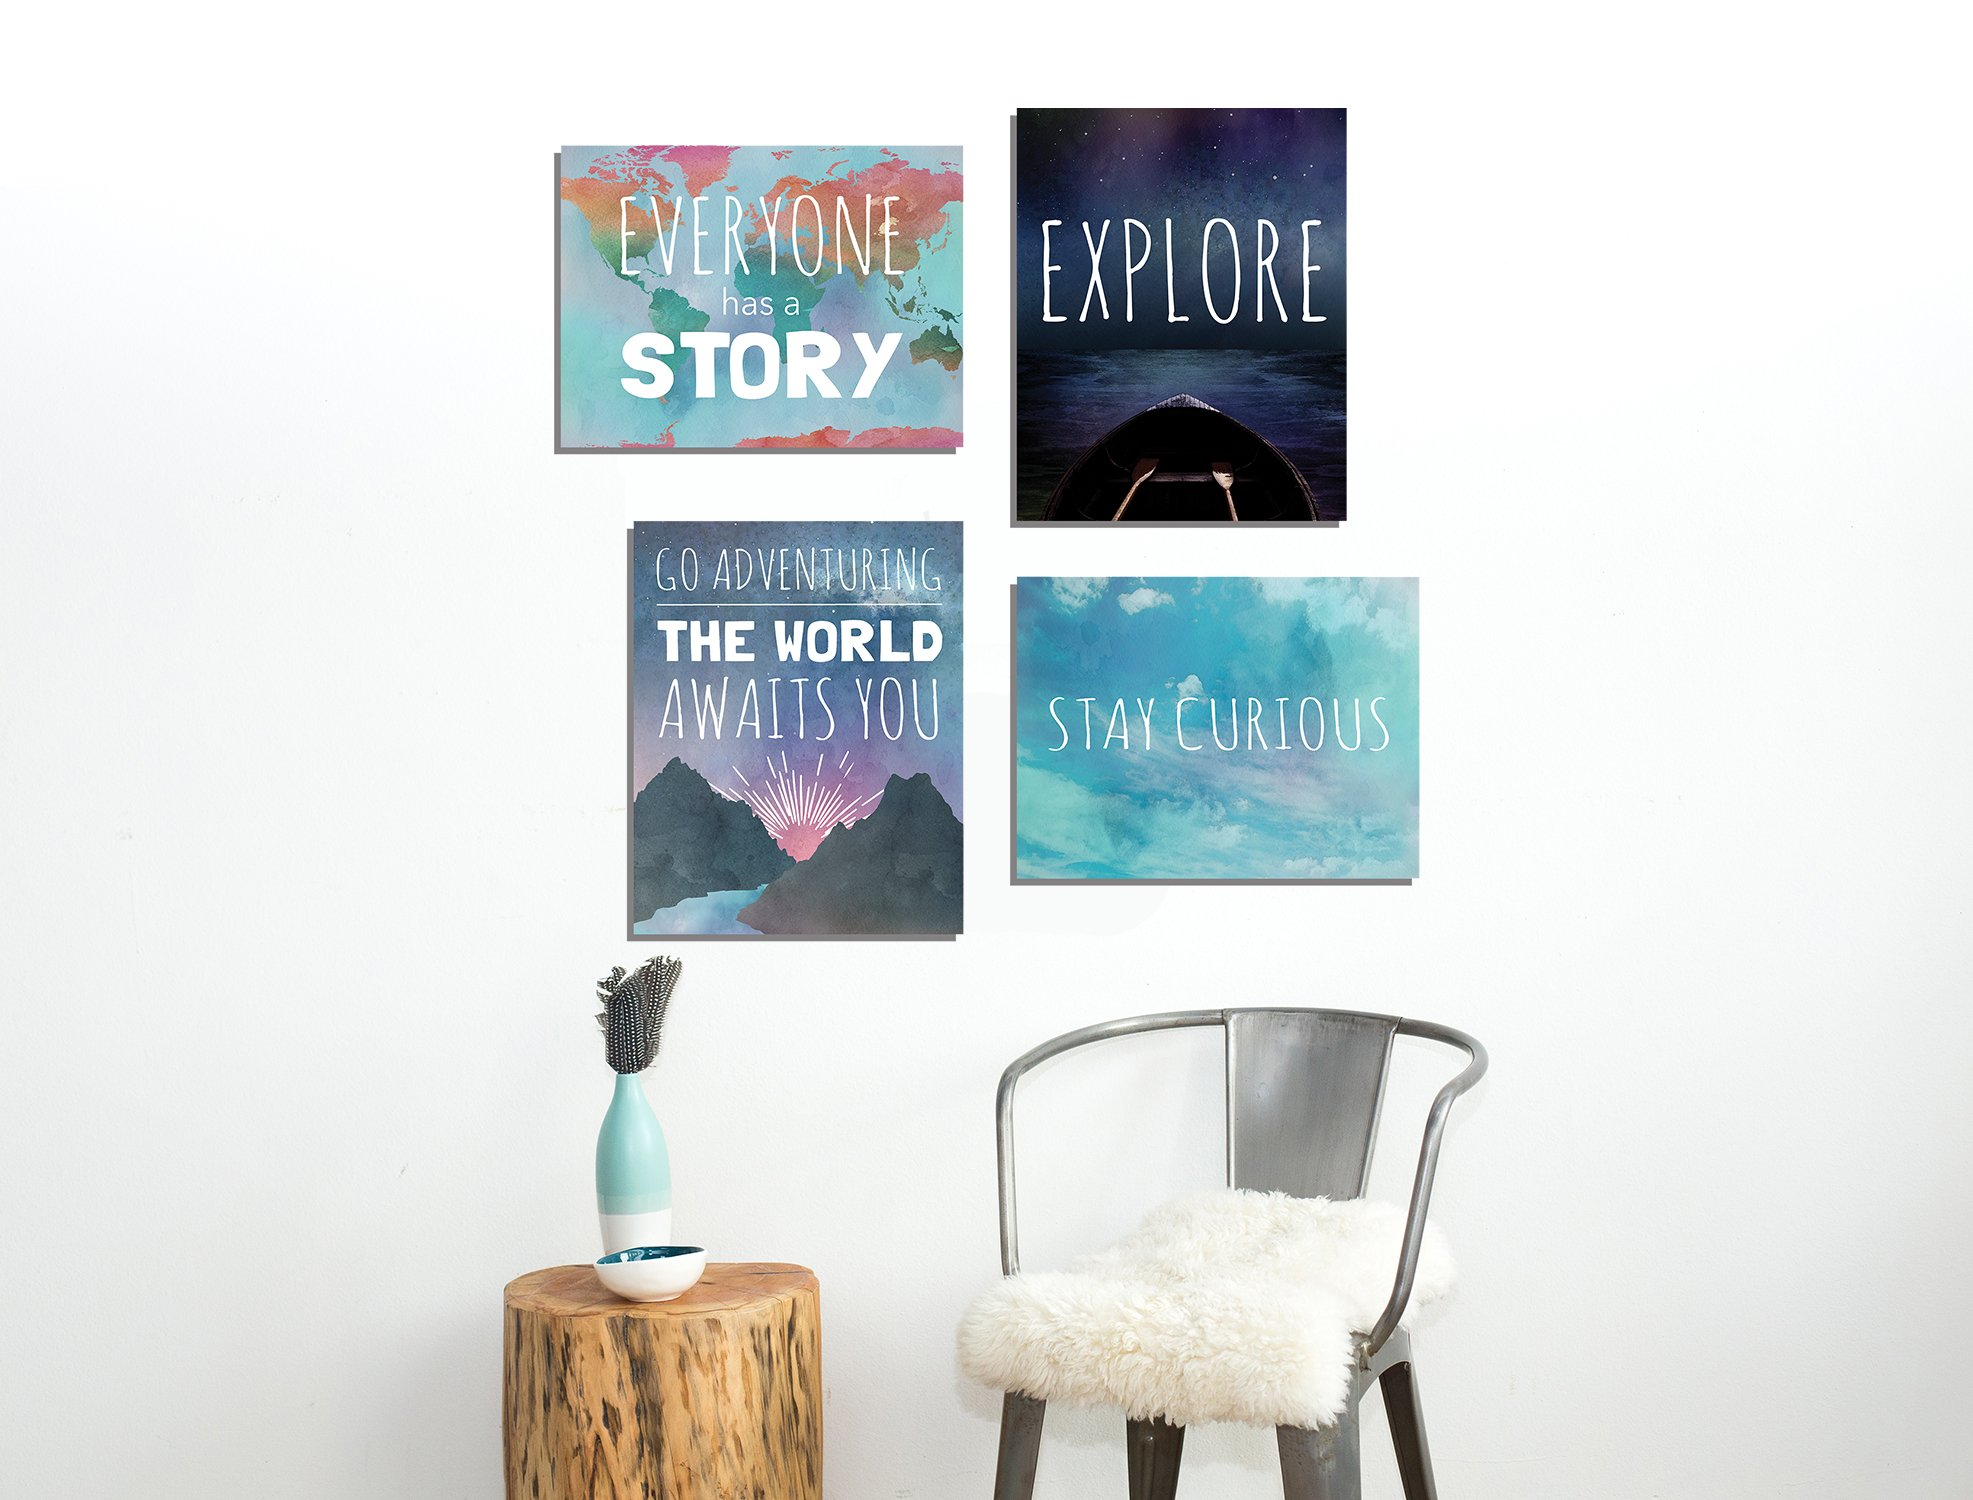 Explore Collection of Four 11x14 Wall Art Prints, Typography, Nursery Decor, Kid's Wall Art Print, Kid's Room Decor, Gender Neutral, Motivational Word Art, Inspirational Decor for Kids, Playroom Decor by Children Inspire Design (Image #2)